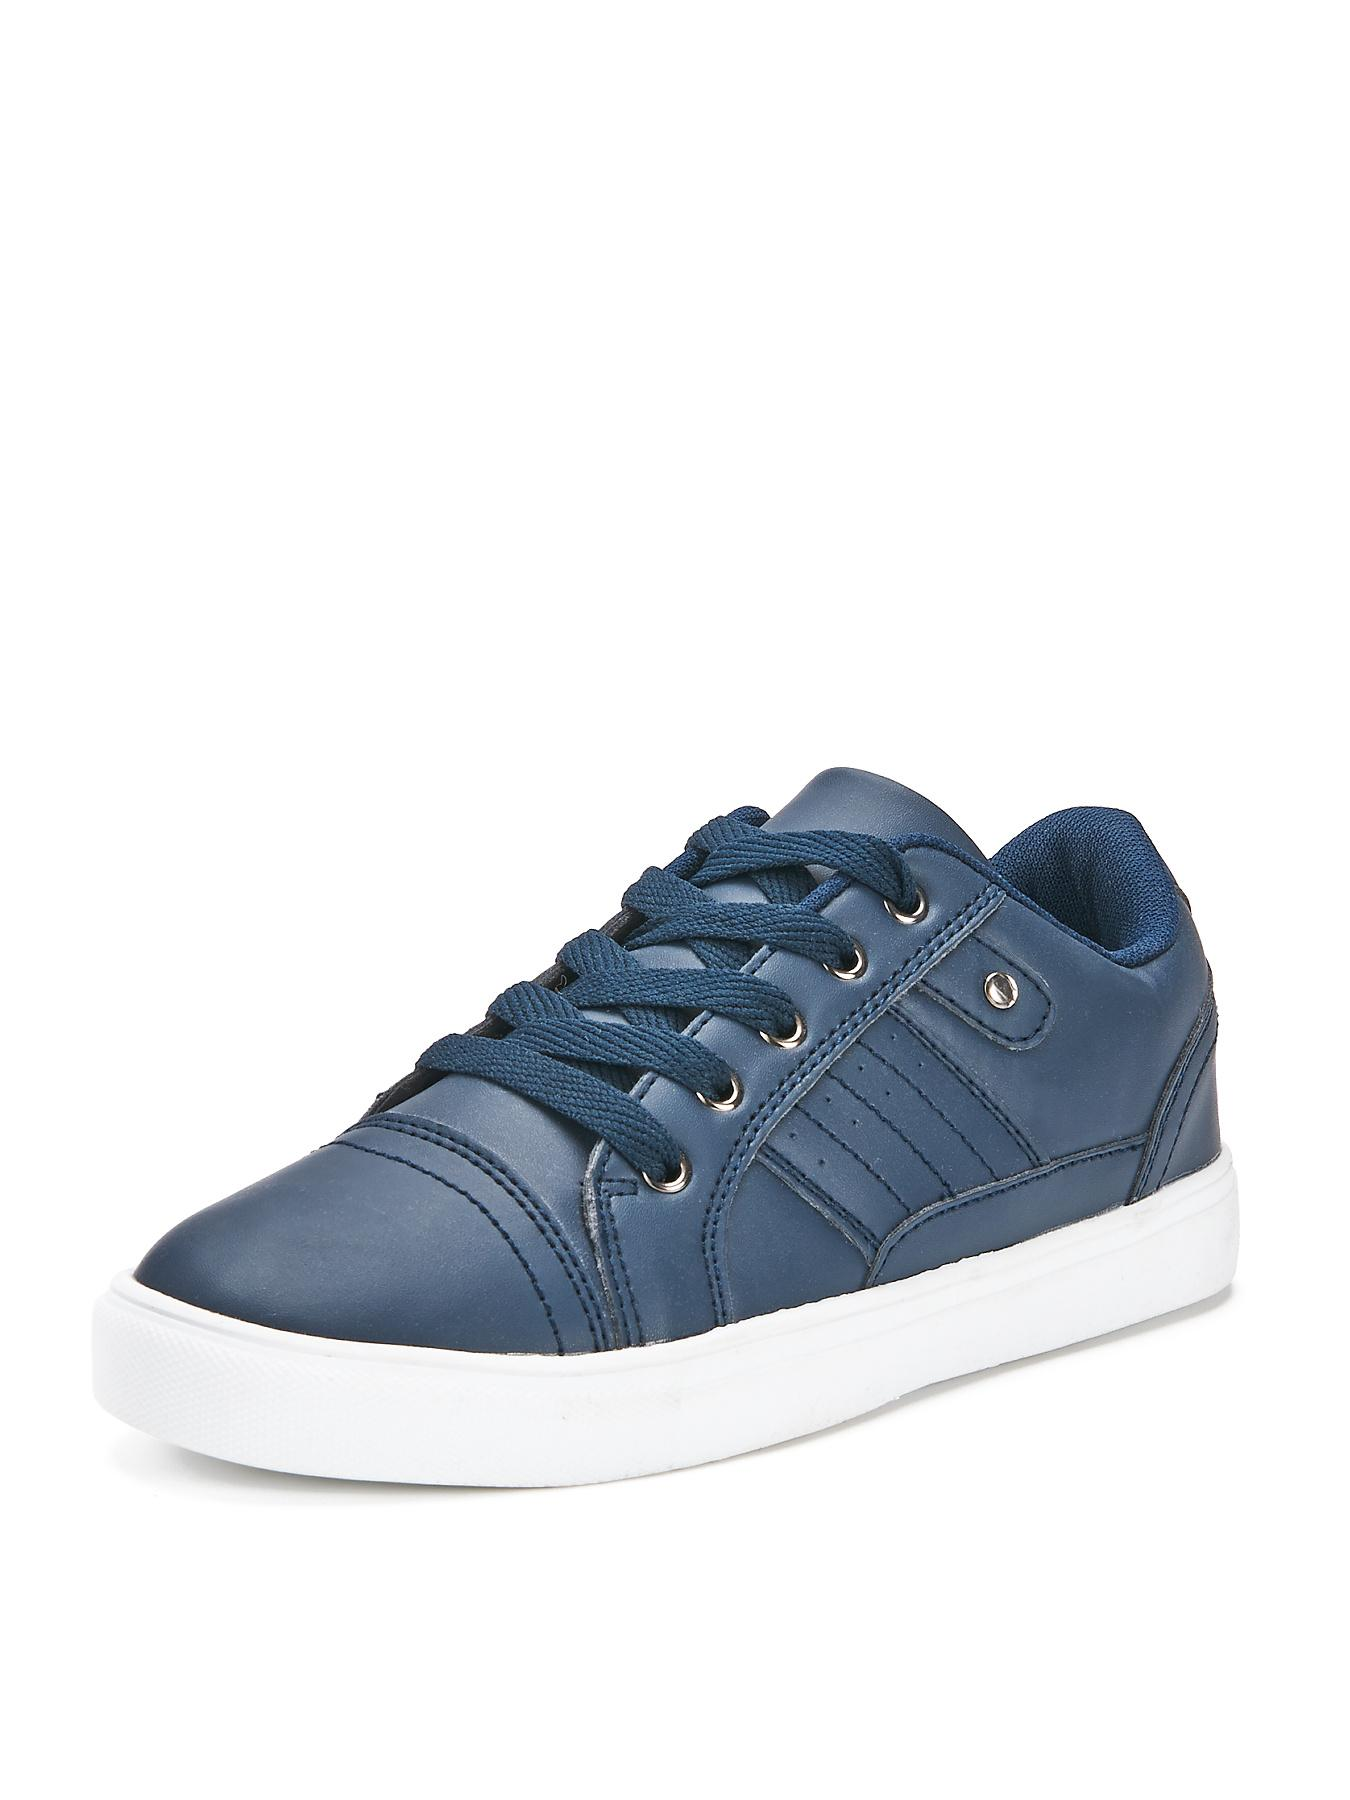 Marc Boys Court Trainers, White,Navy